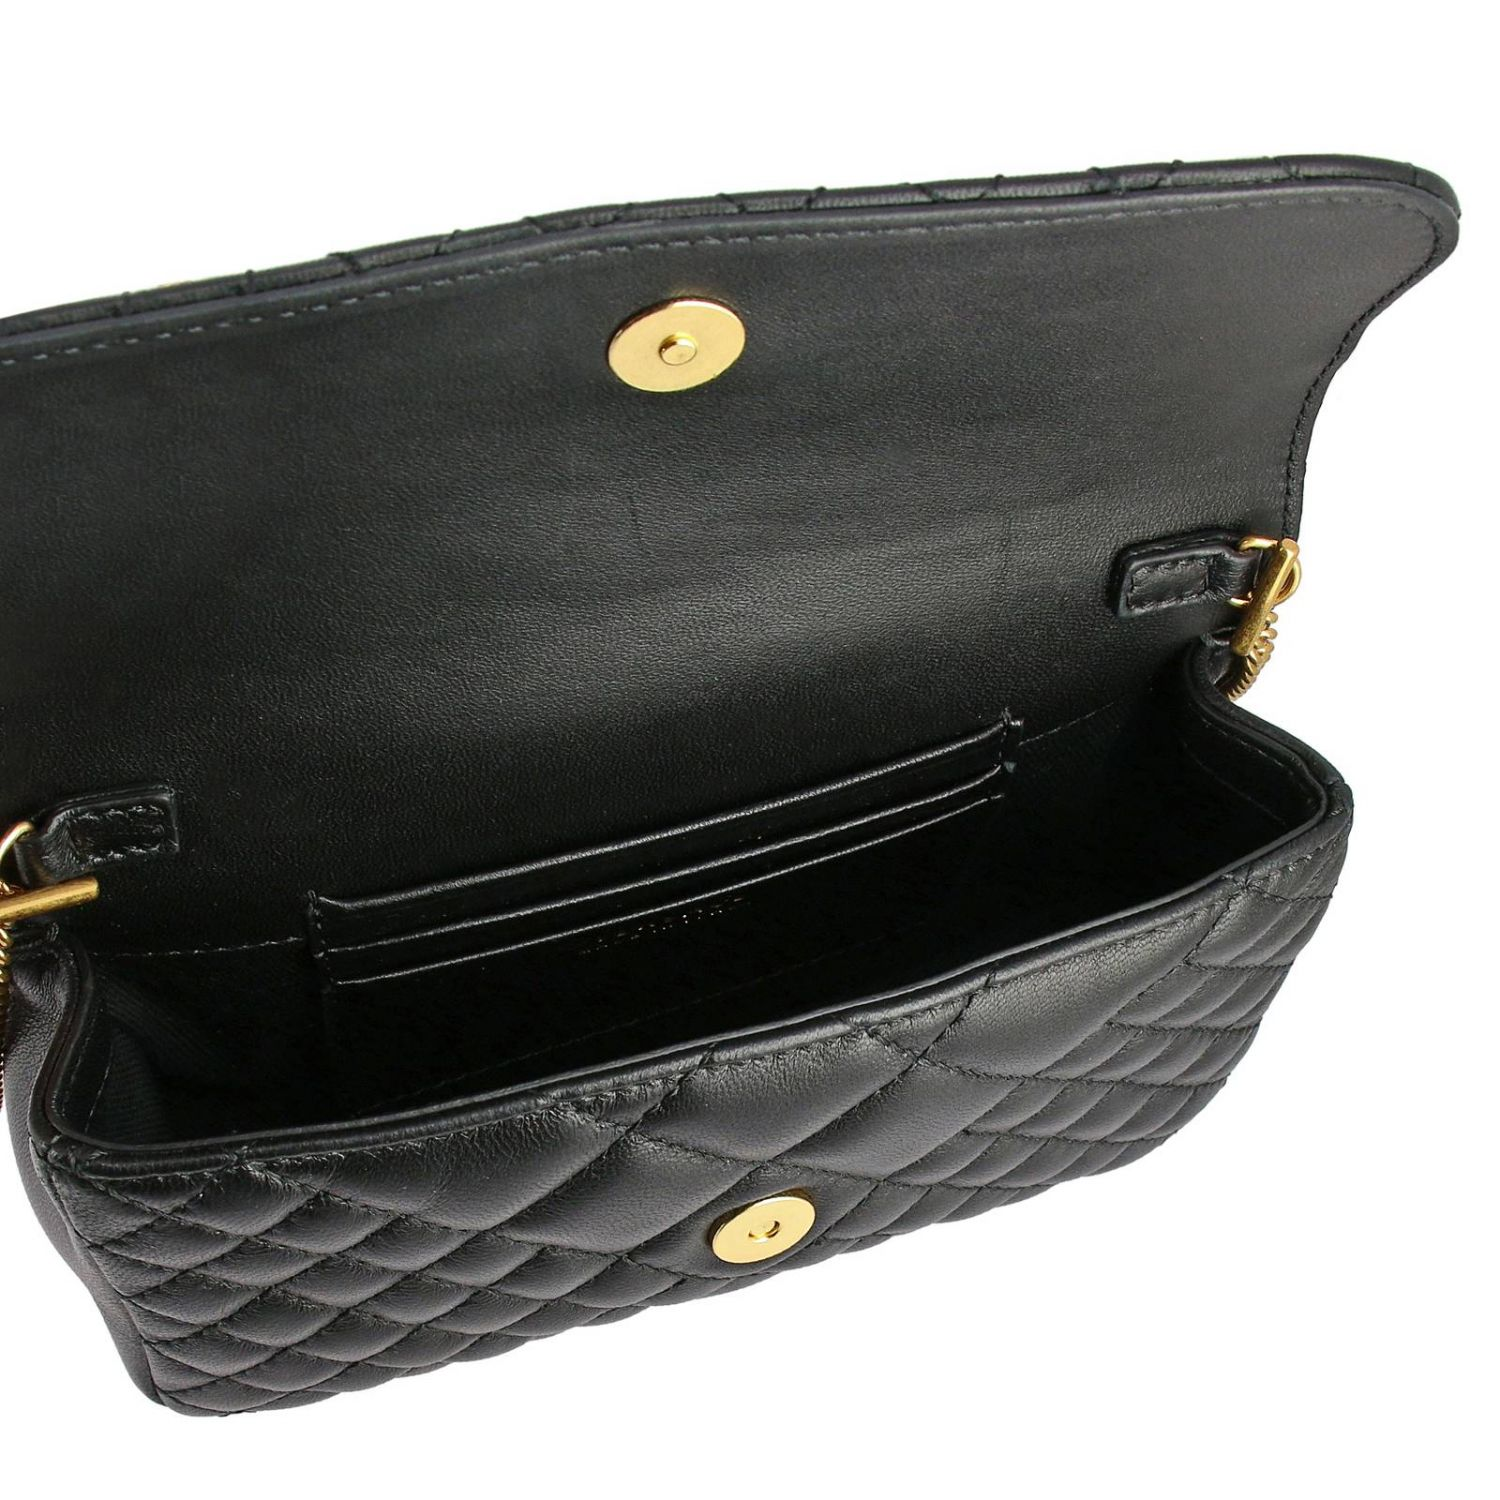 Versace shoulder bag in quilted leather with Medusa head gold 5